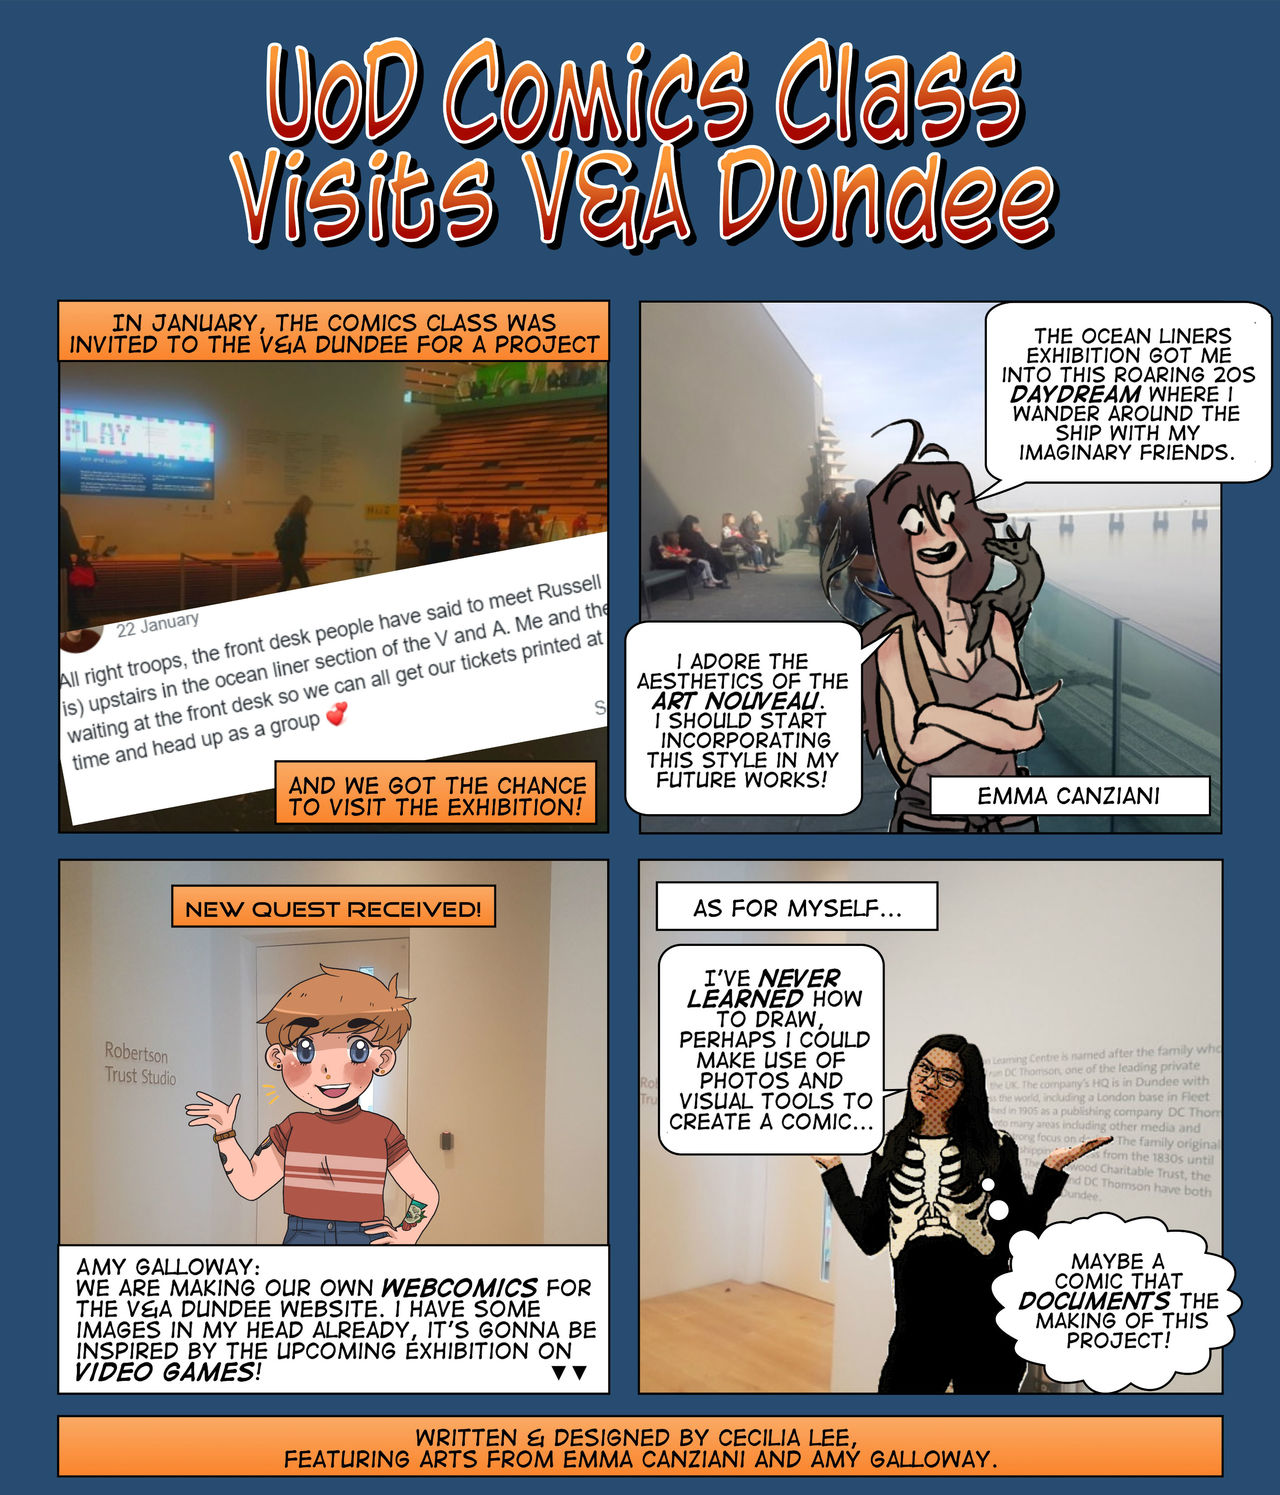 A four-panel comic documenting this webcomics project. Different students are featured in each panel talking about their visit to the museum for inspiration and what they've decided to focus on. Emma talks about Ocean Liners and how she wants to do something with the roaring twenties, whereas Amy wants to focus on Videogames. Cecilia, the designer of this comic, says since she can't draw, she's going to use photography and other people's artwork to document this project.